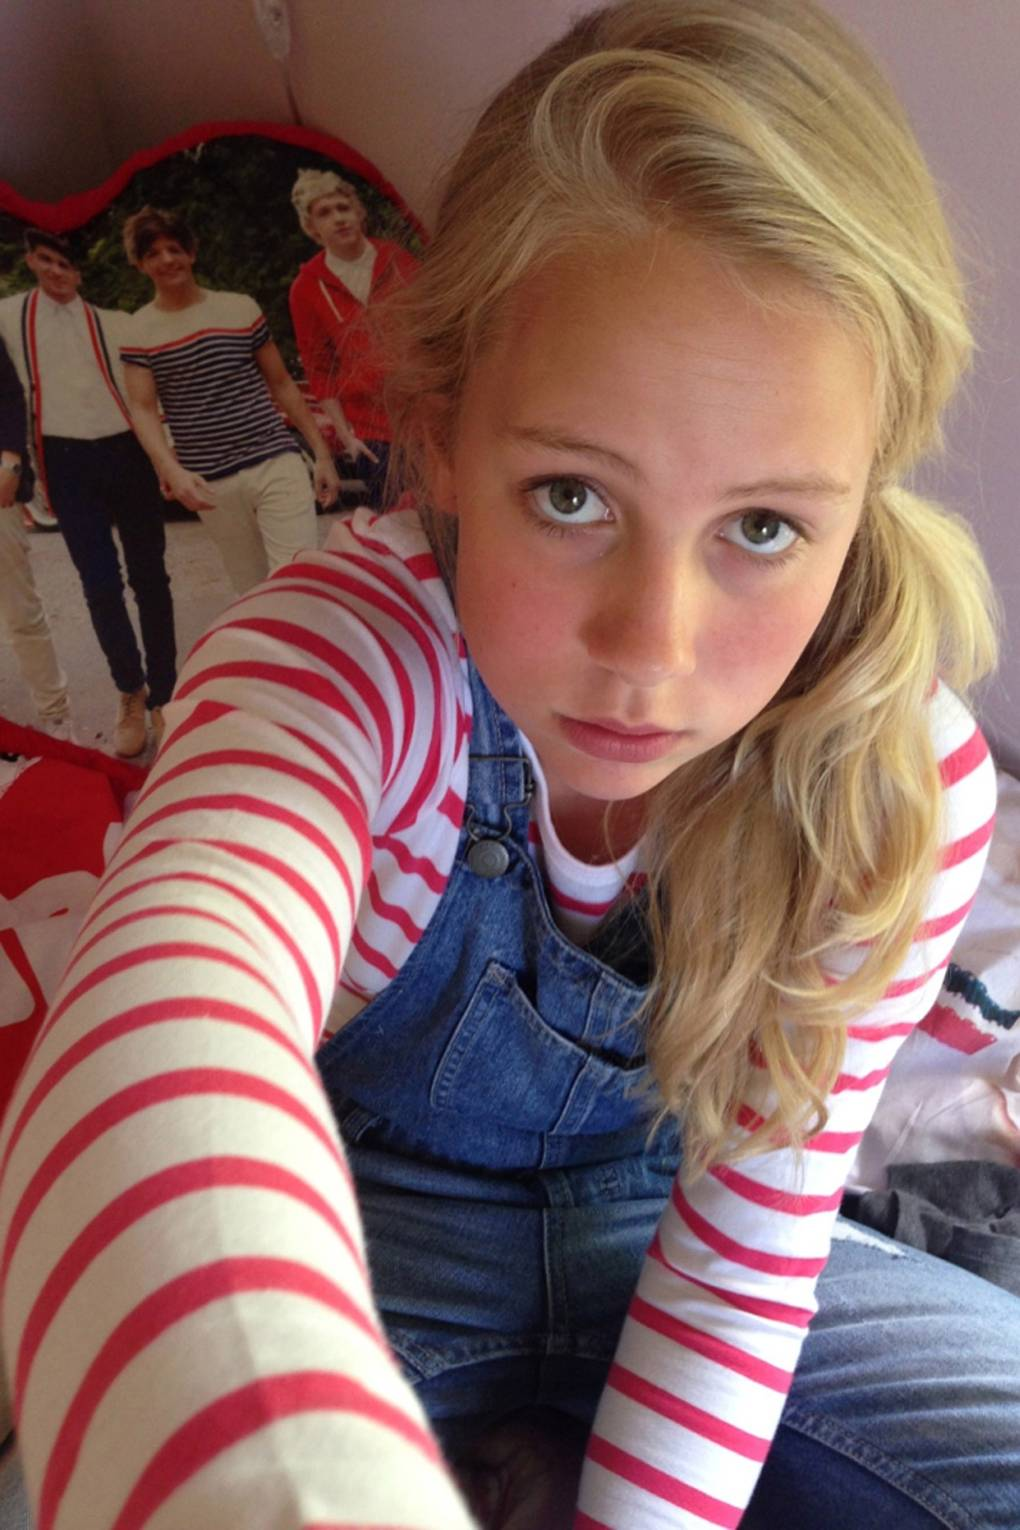 3c8e93420972 Thea Norway 12 year old child bride goes viral -Celebrity News ...